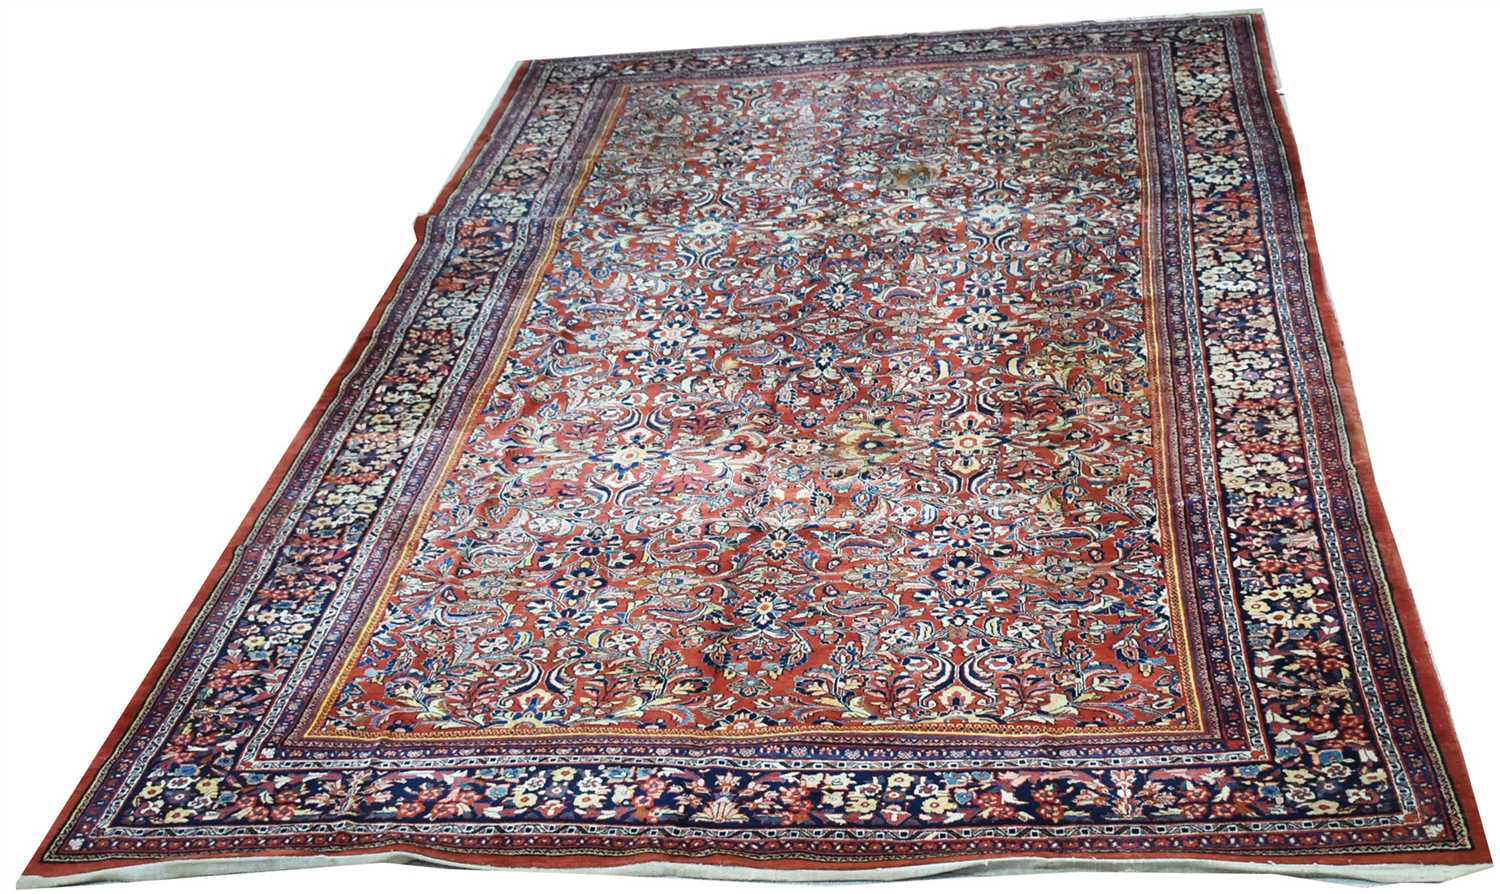 Lot 928-Farahan carpet